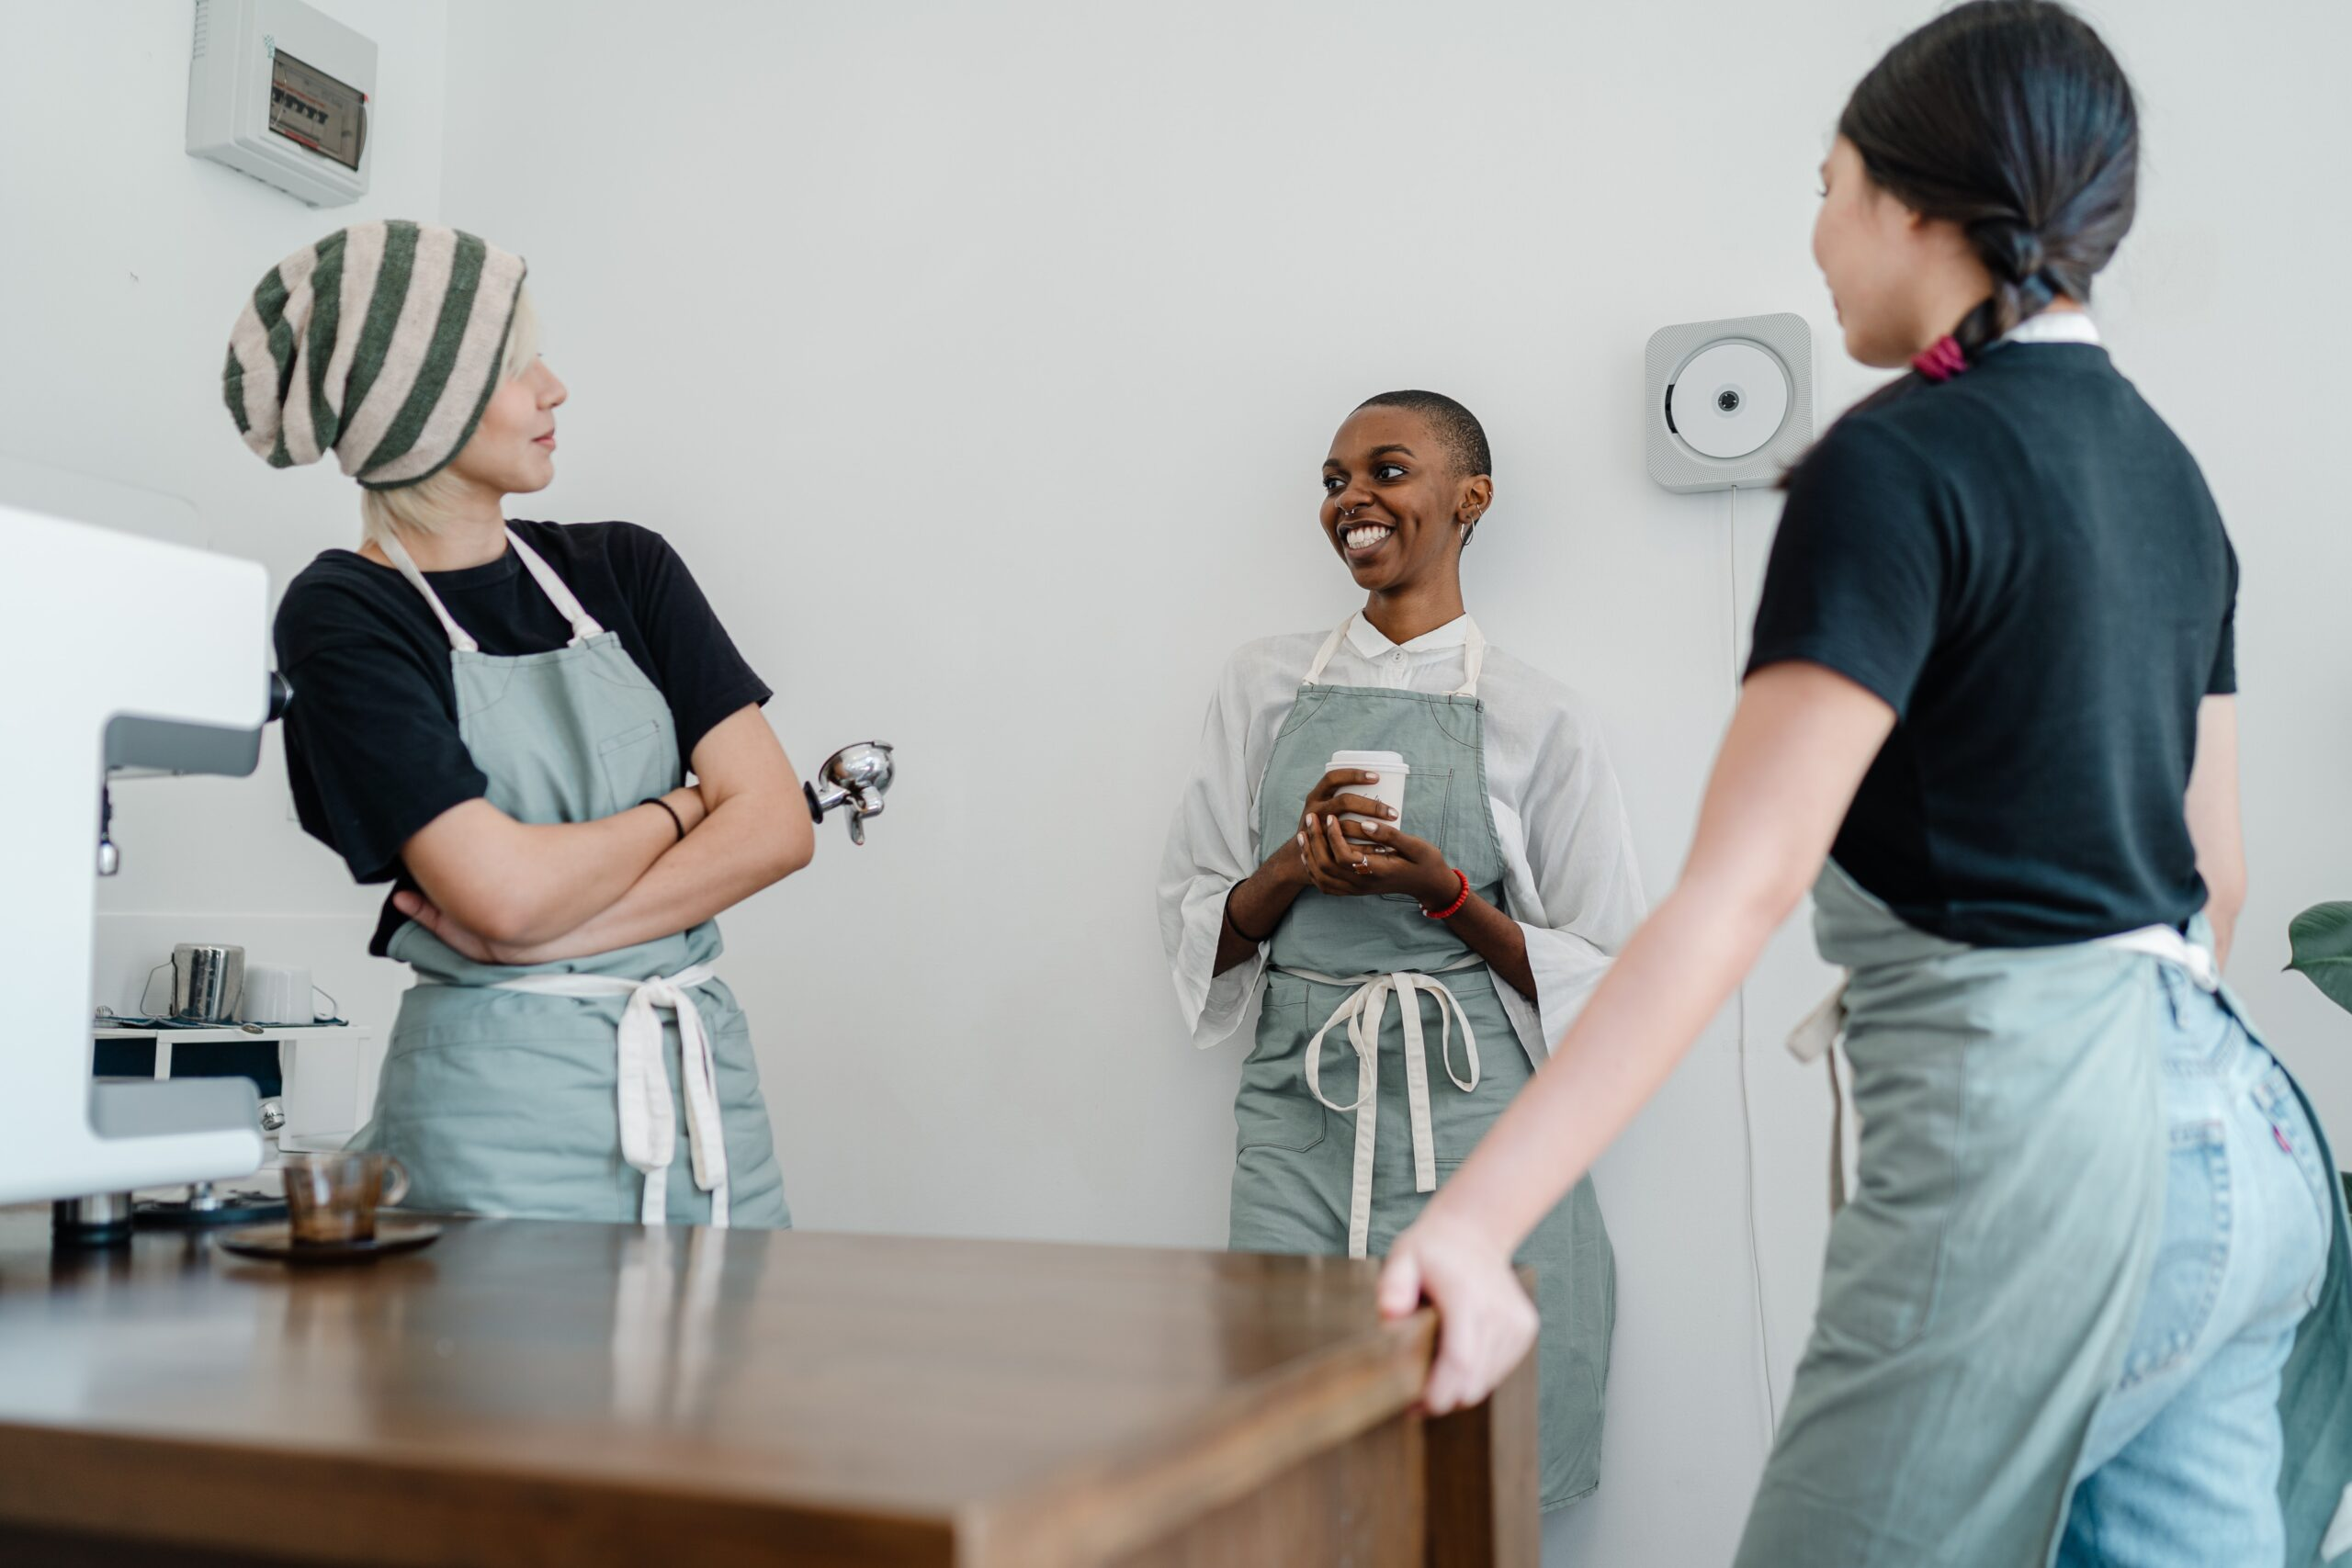 Three people wearing aprons stood in a kitchen talking